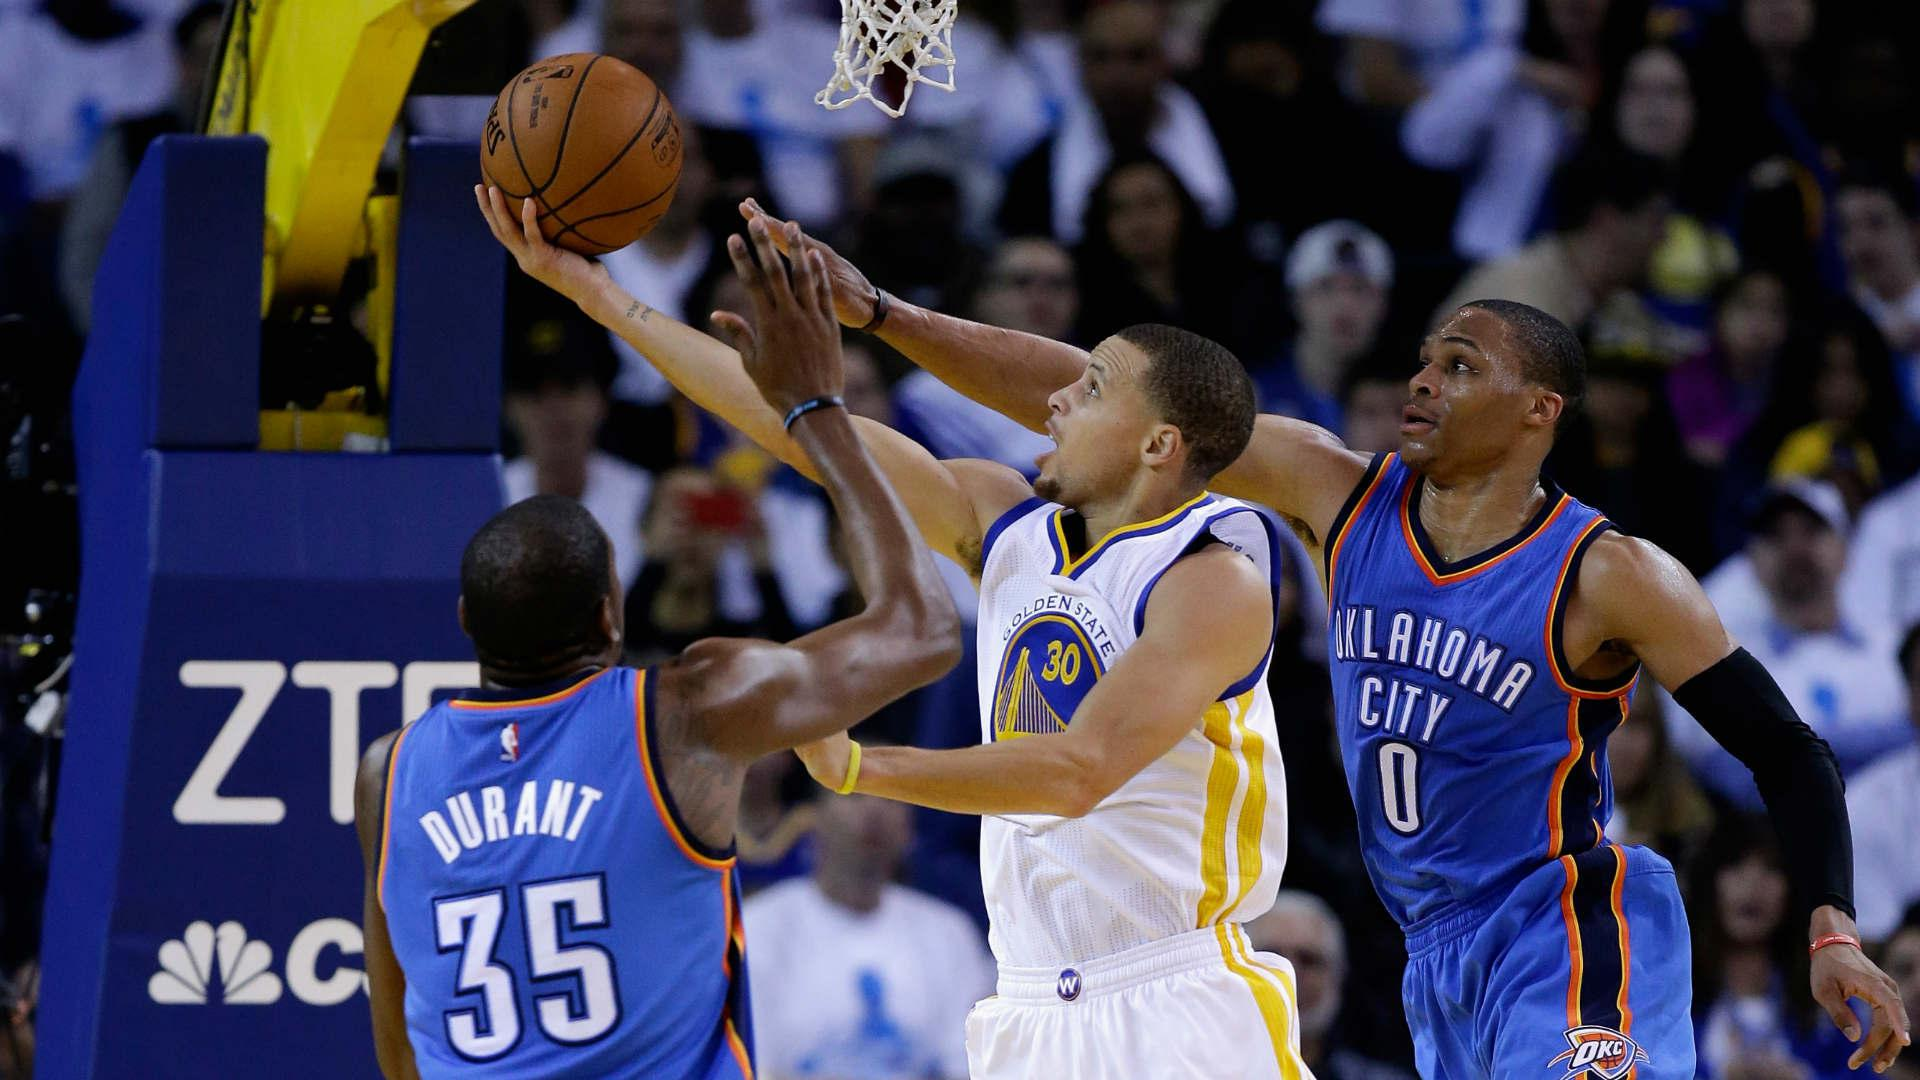 Russell Westbrook wont play in Oklahoma Citys season opener The 29yearold star is listed as out for the Thunders game against the Warriors on